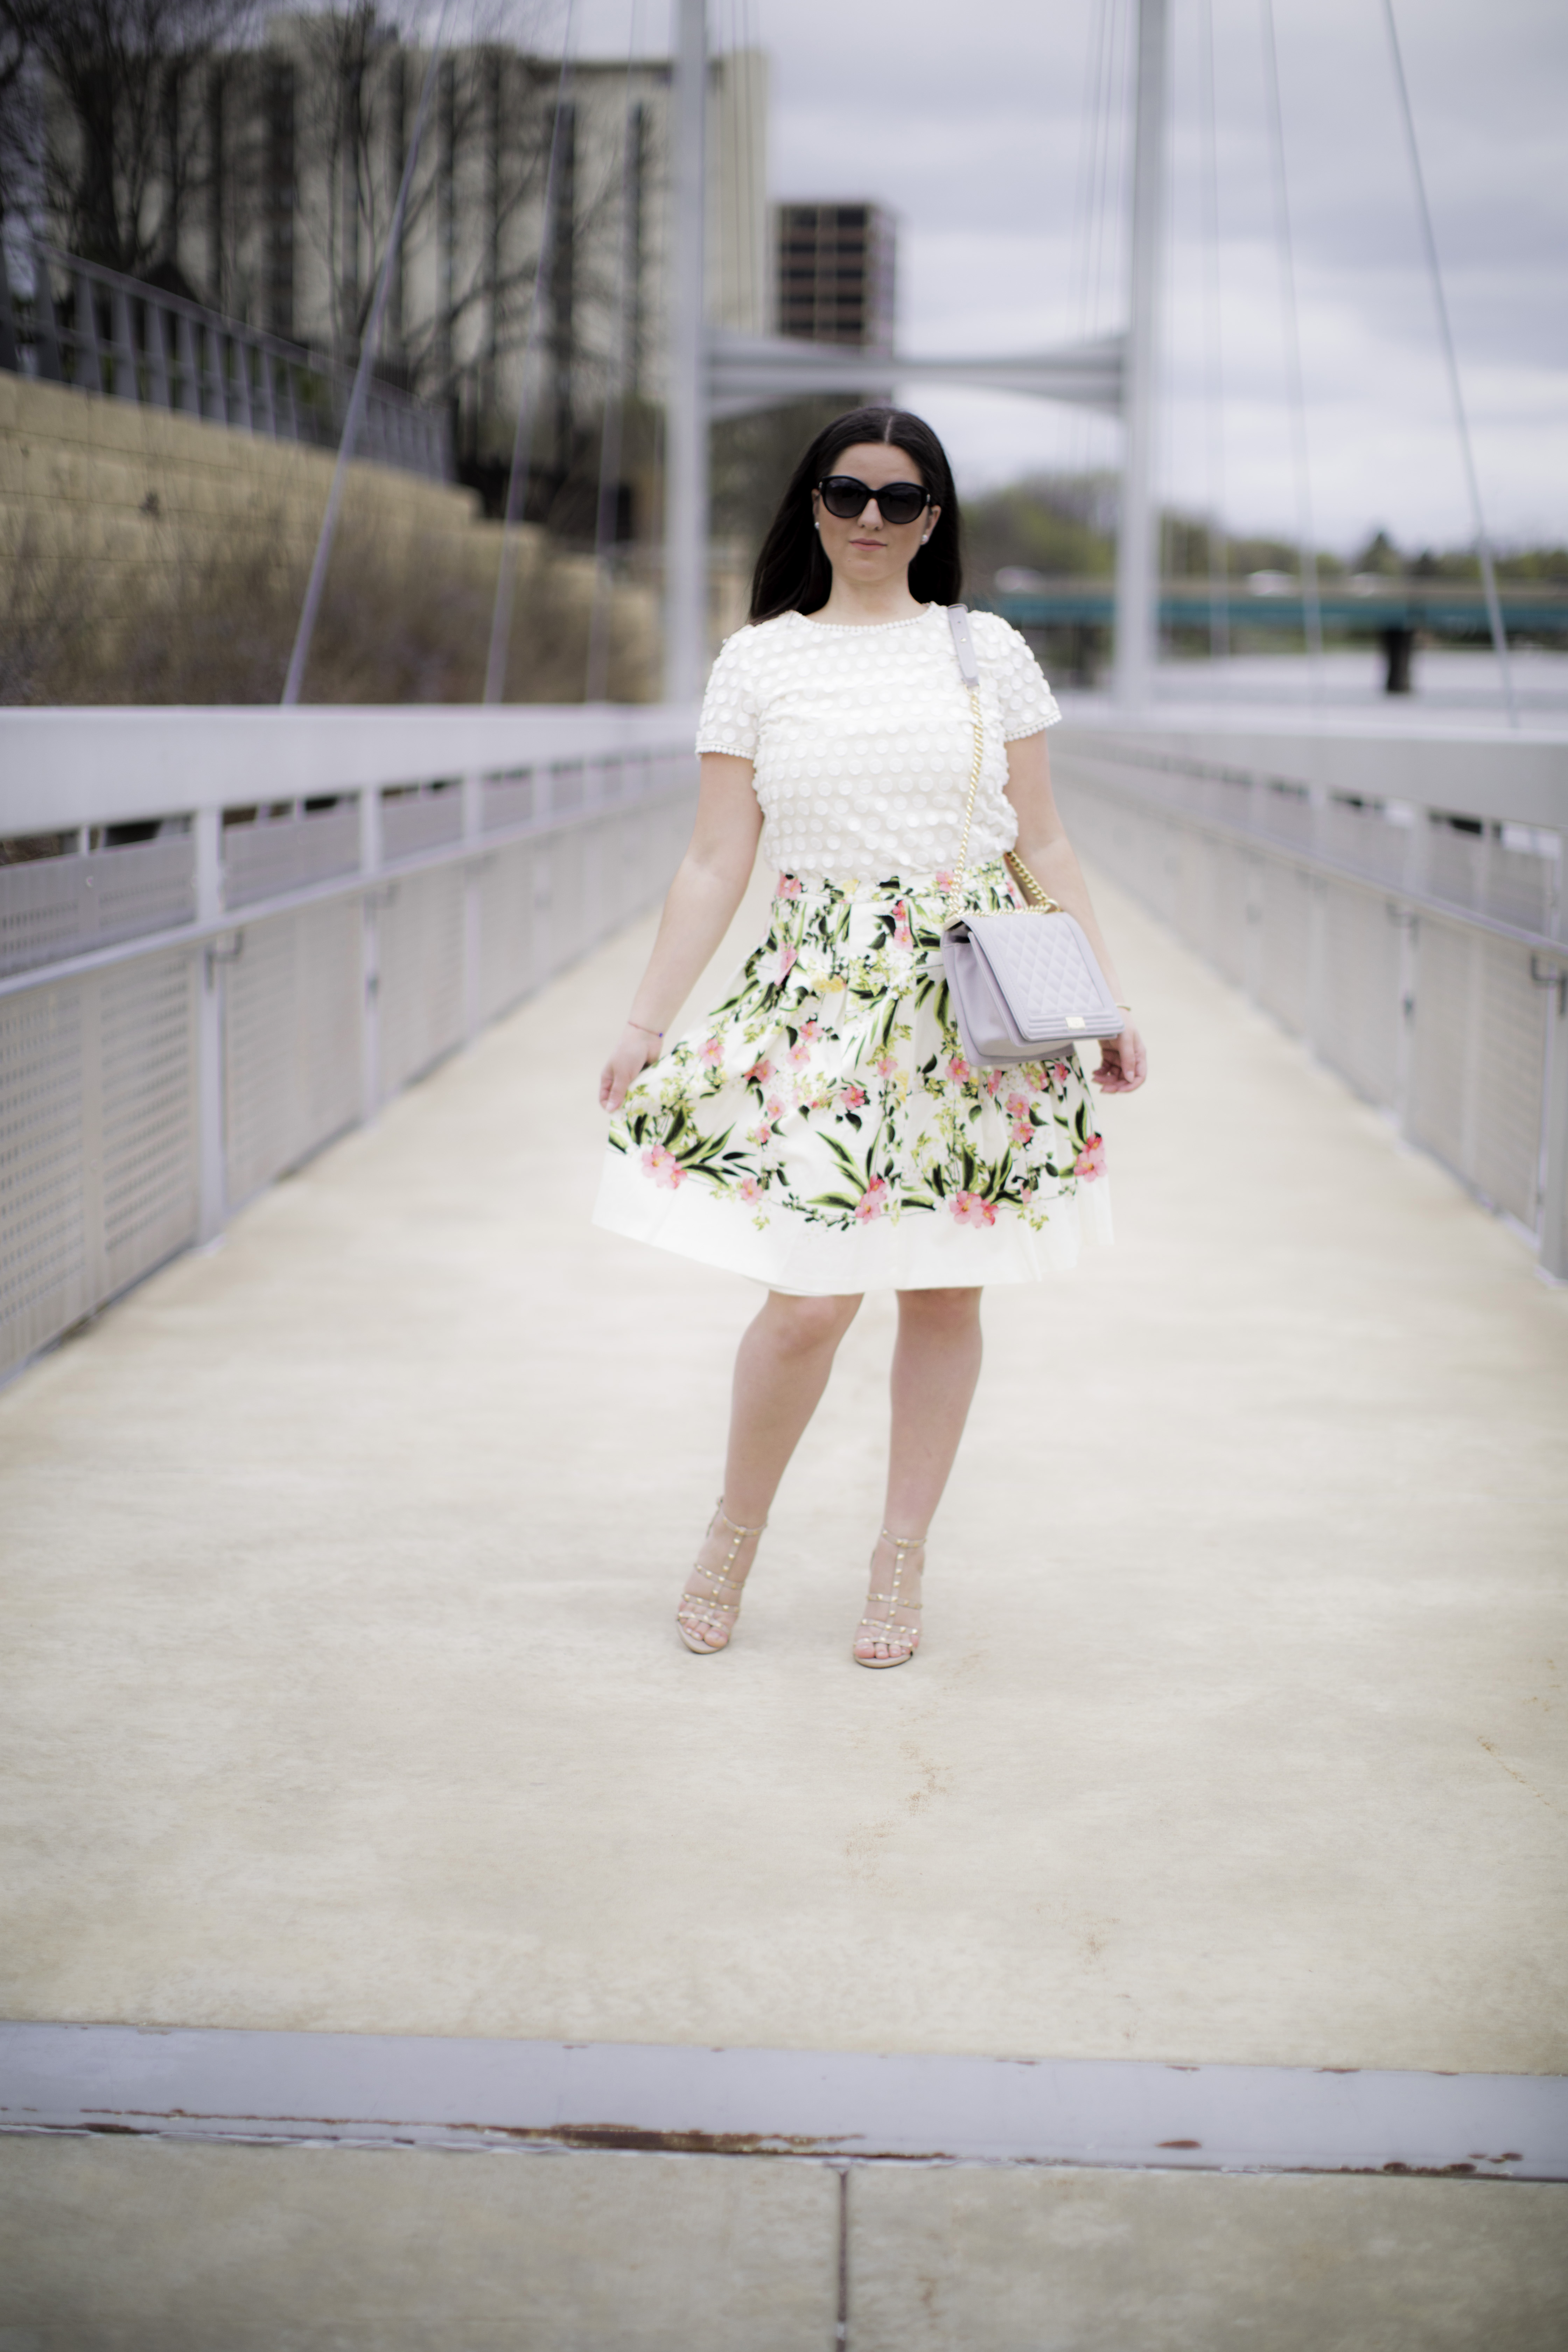 talbots fashion, floral skirt fit and flare, crochet short sleeve top, chicago fashion blogger, baily lamb